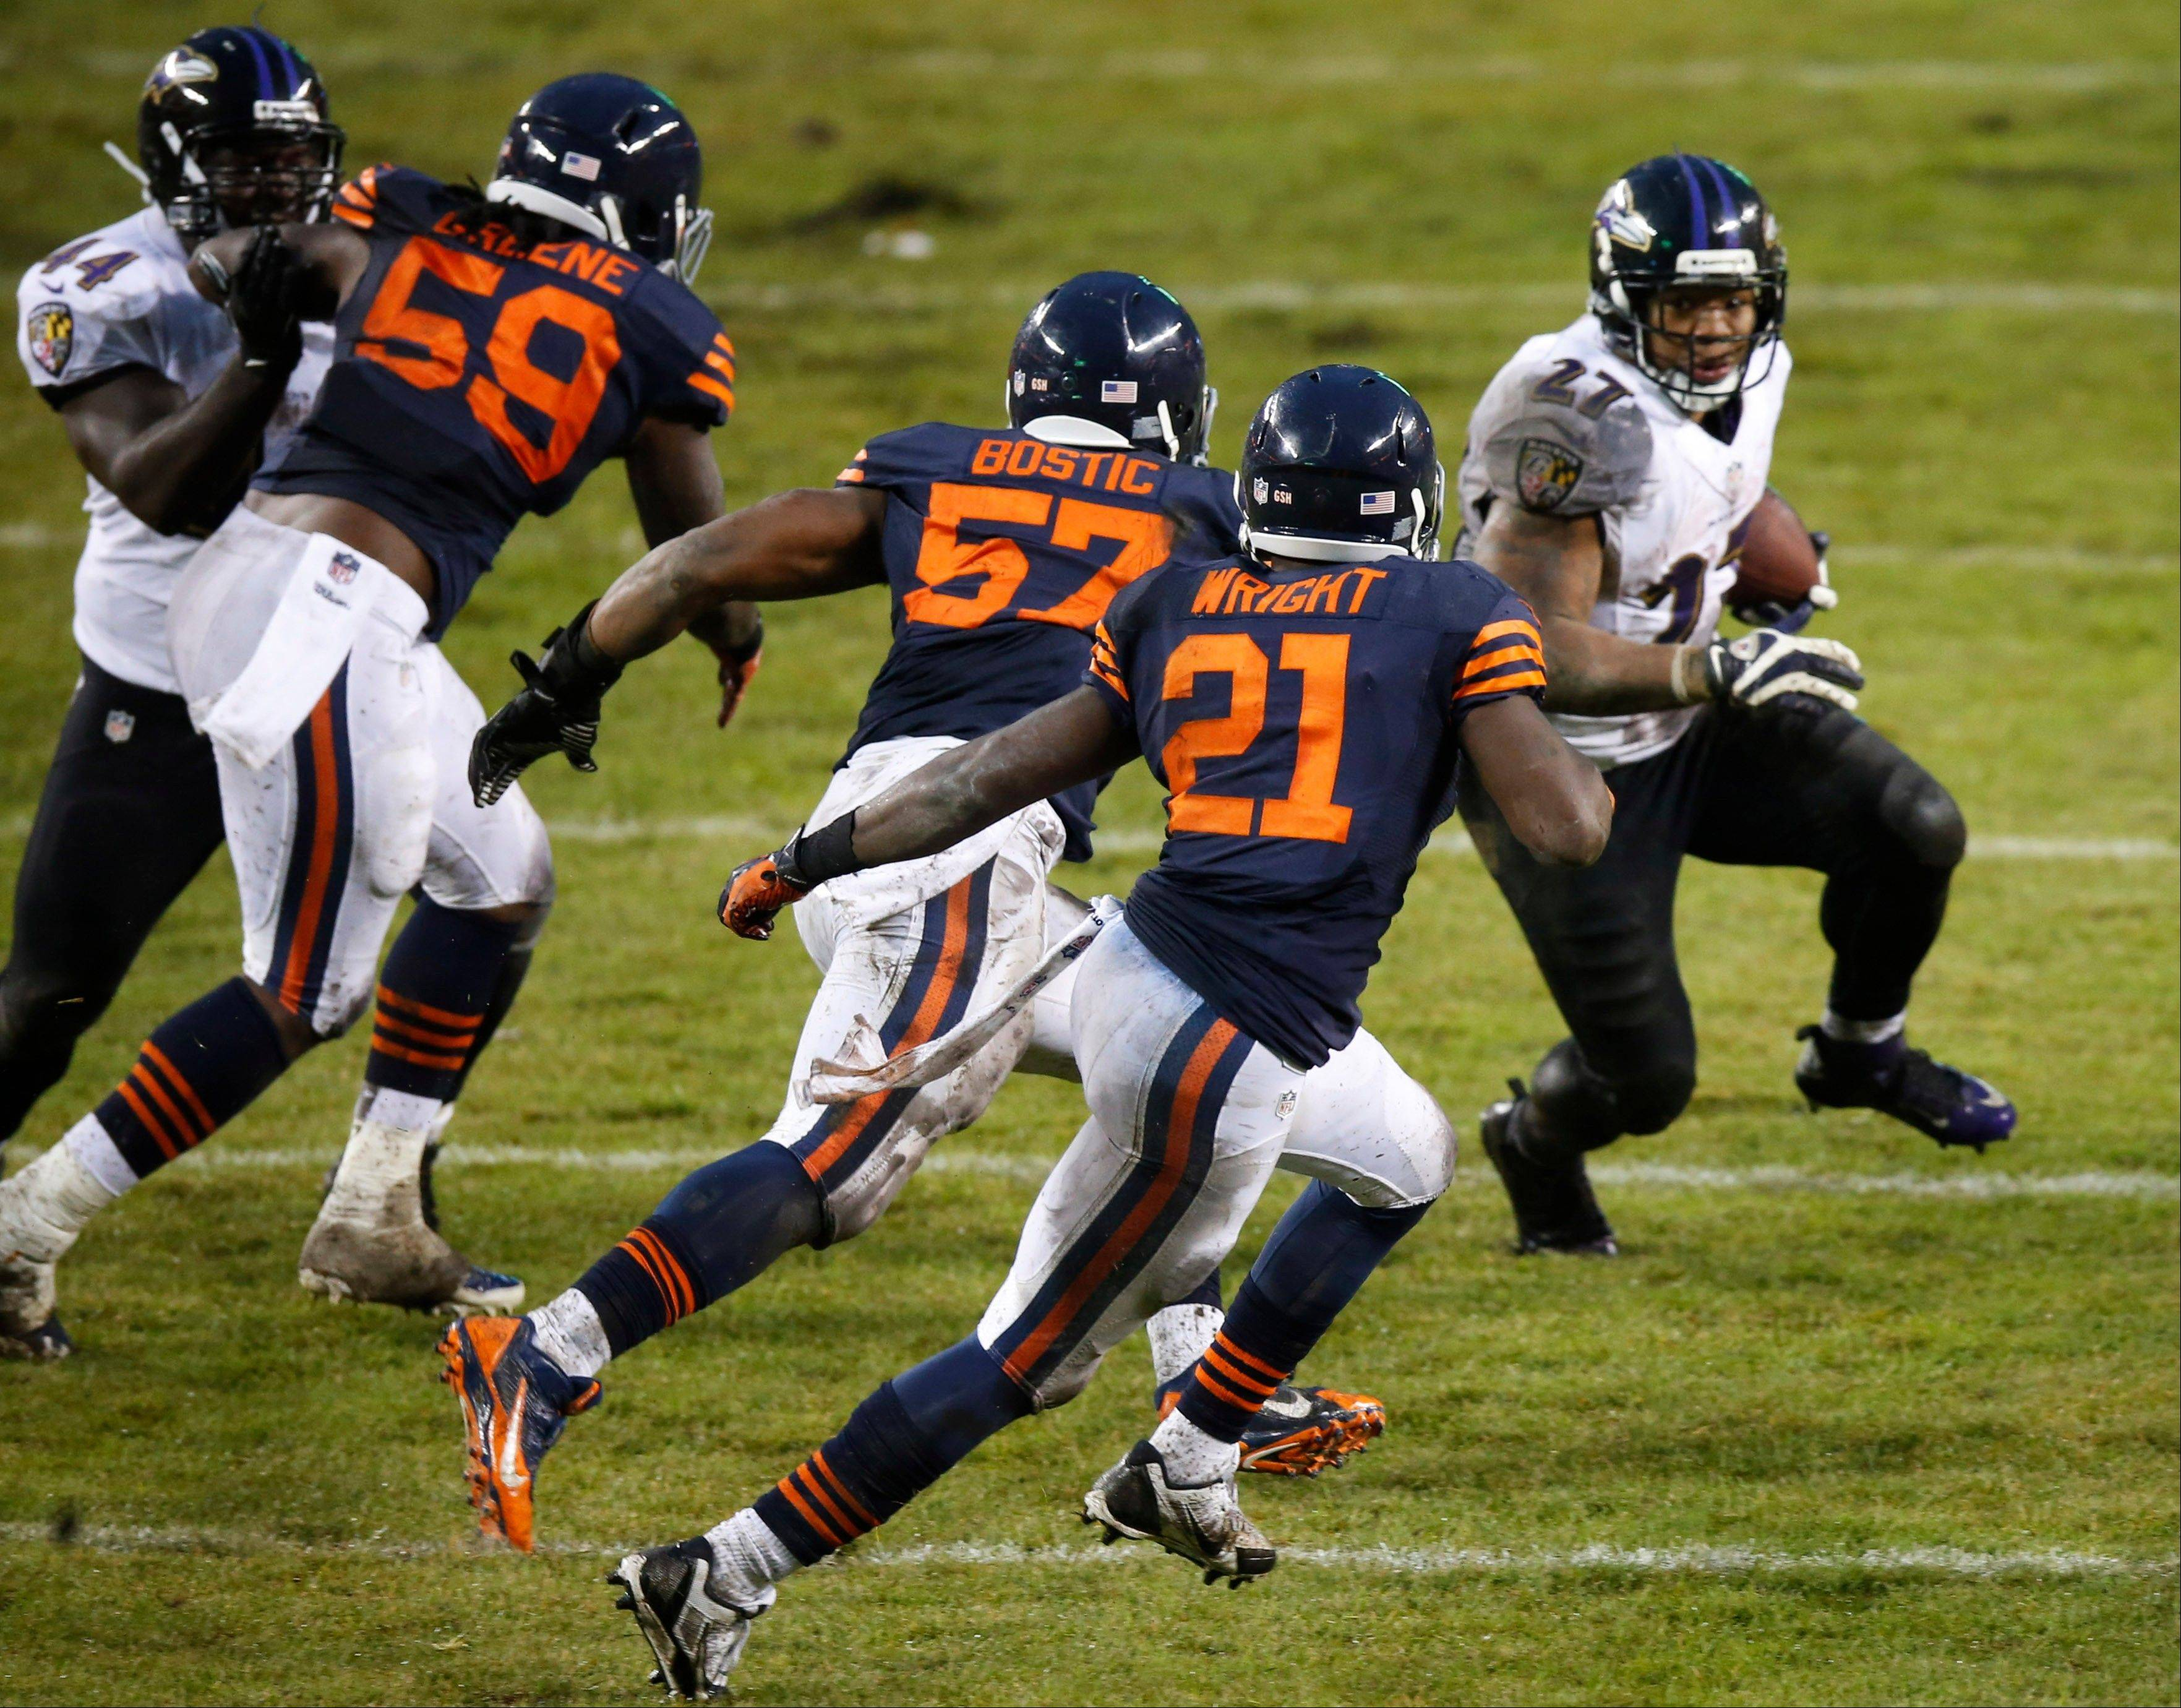 Baltimore running back Ray Rice rushes against Bears safety Major Wright (21), linebacker Jon Bostic (57) and linebacker Khaseem Greene (59) during the second half of last Sunday's game in Chicago. Rice amassed a season-best 131 yards on 25 carries for a 5.2-yard average.